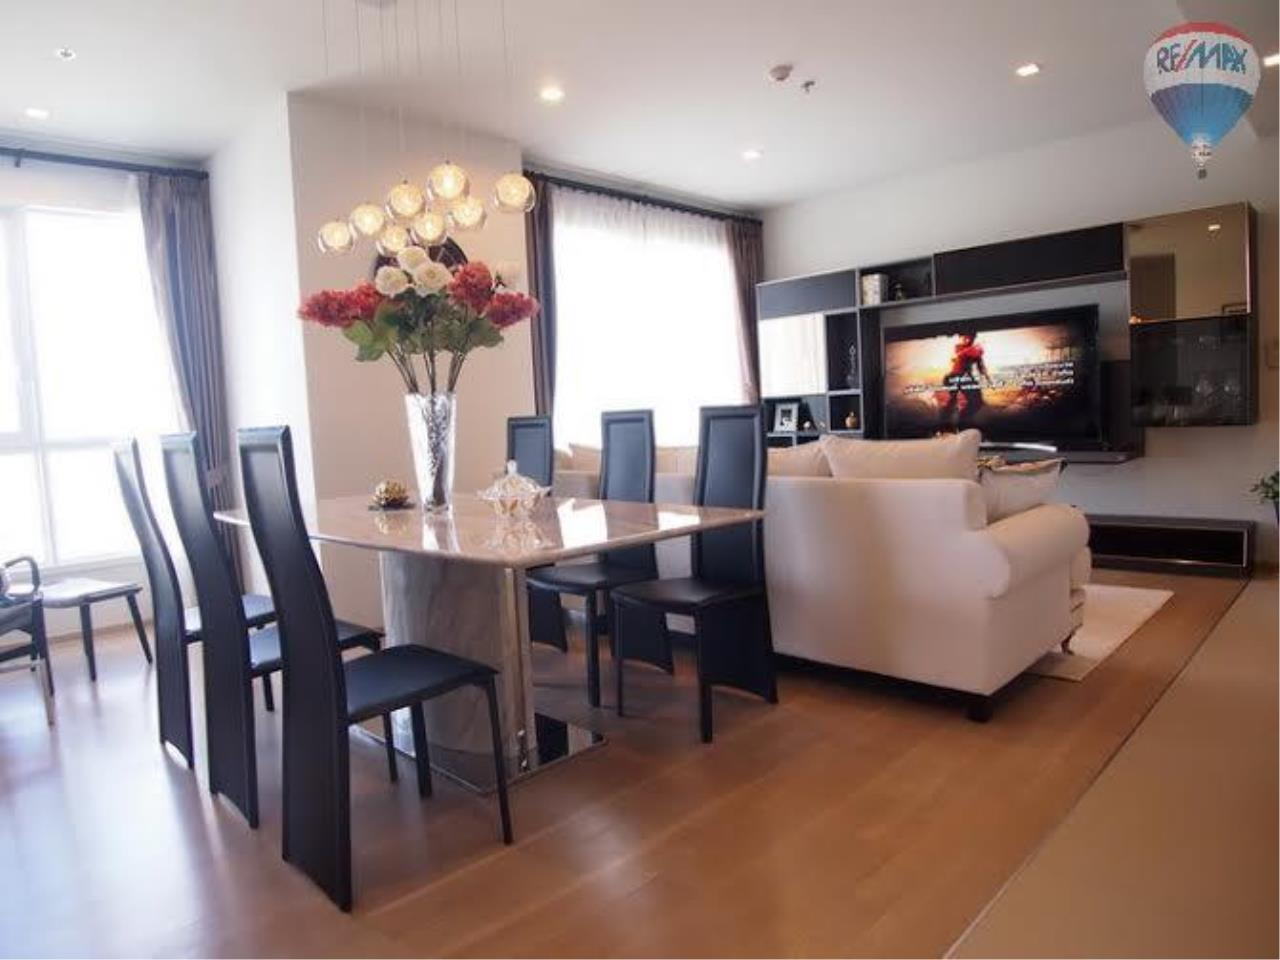 RE/MAX Properties Agency's 2 Bedrooms 100 Sq.M. in HQ by Sansiri for sale 21